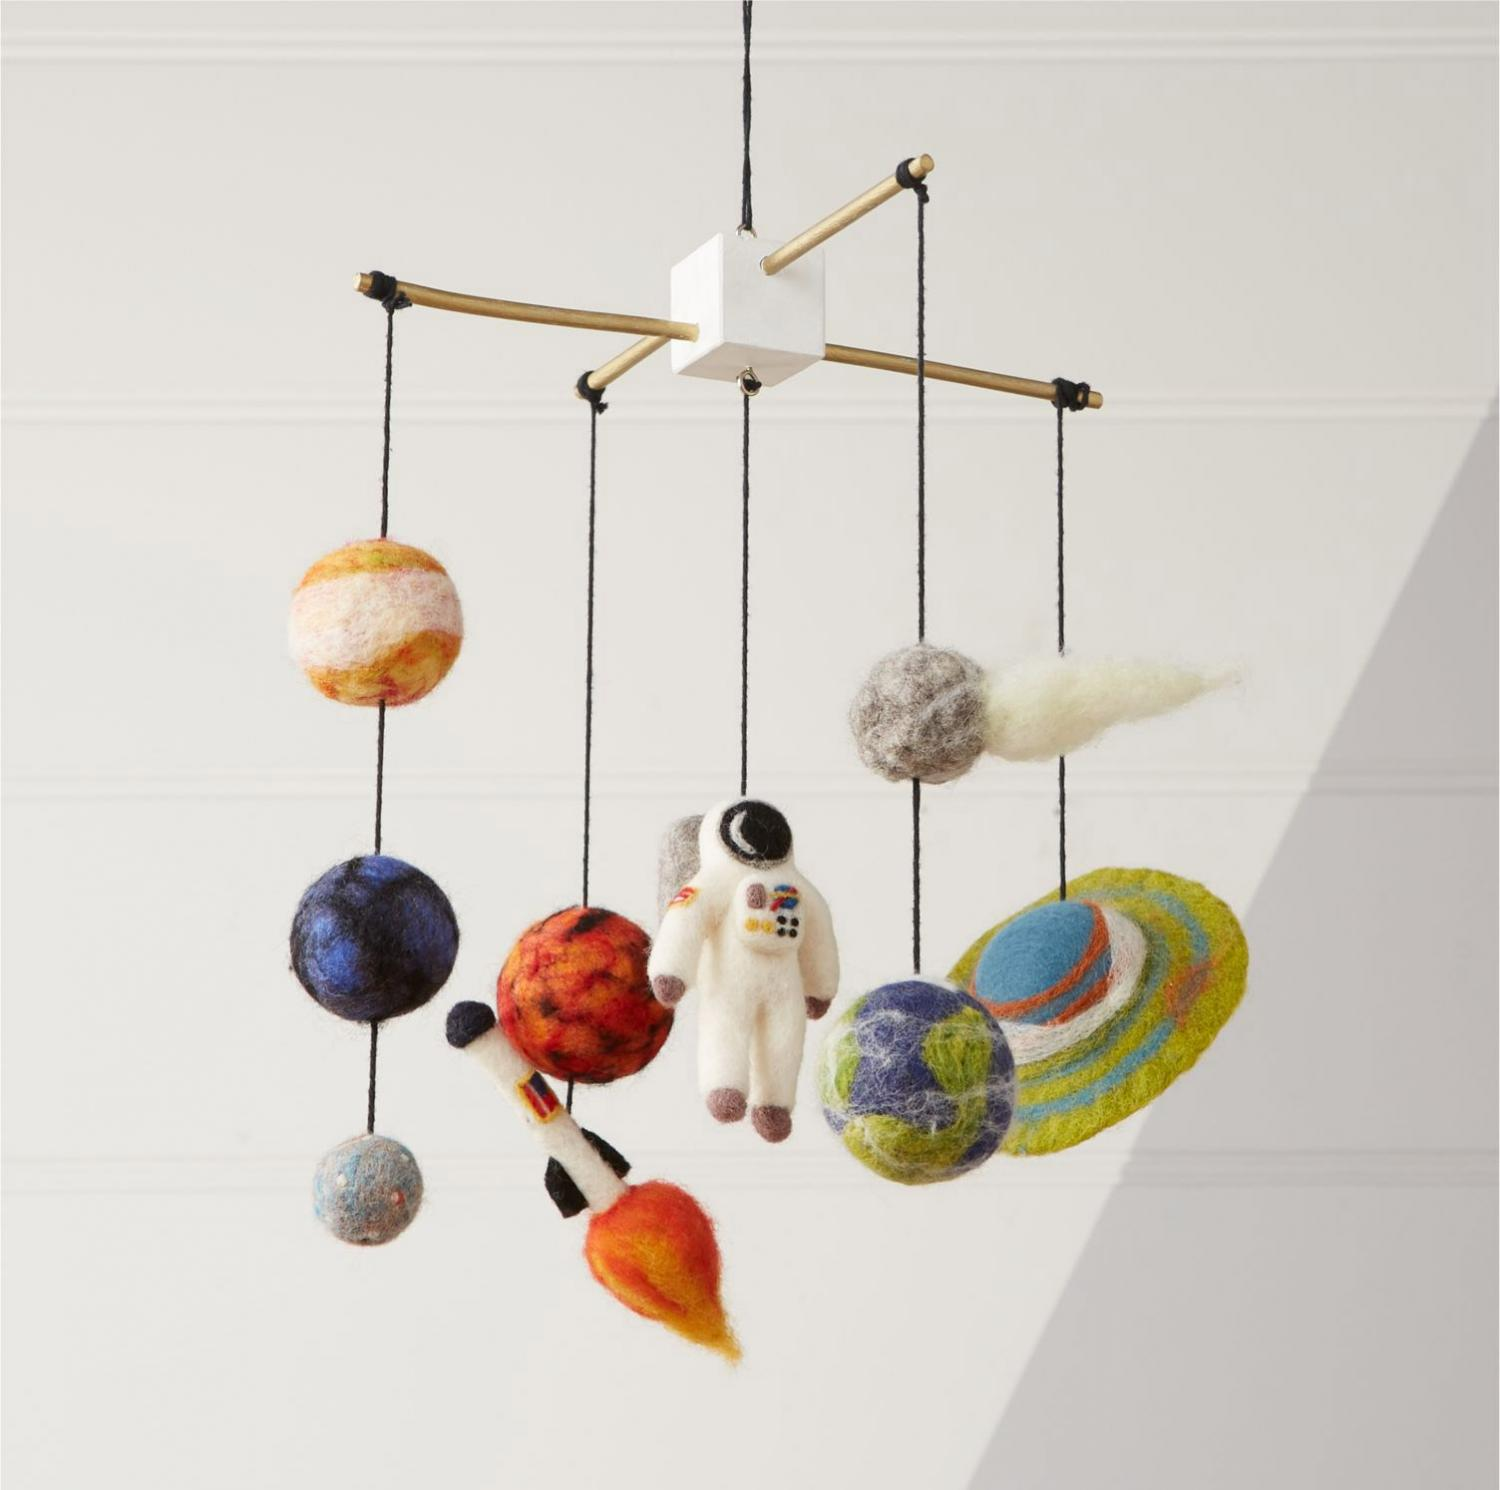 Deep Space Crib Mobile - Helps babies and kids learn about space